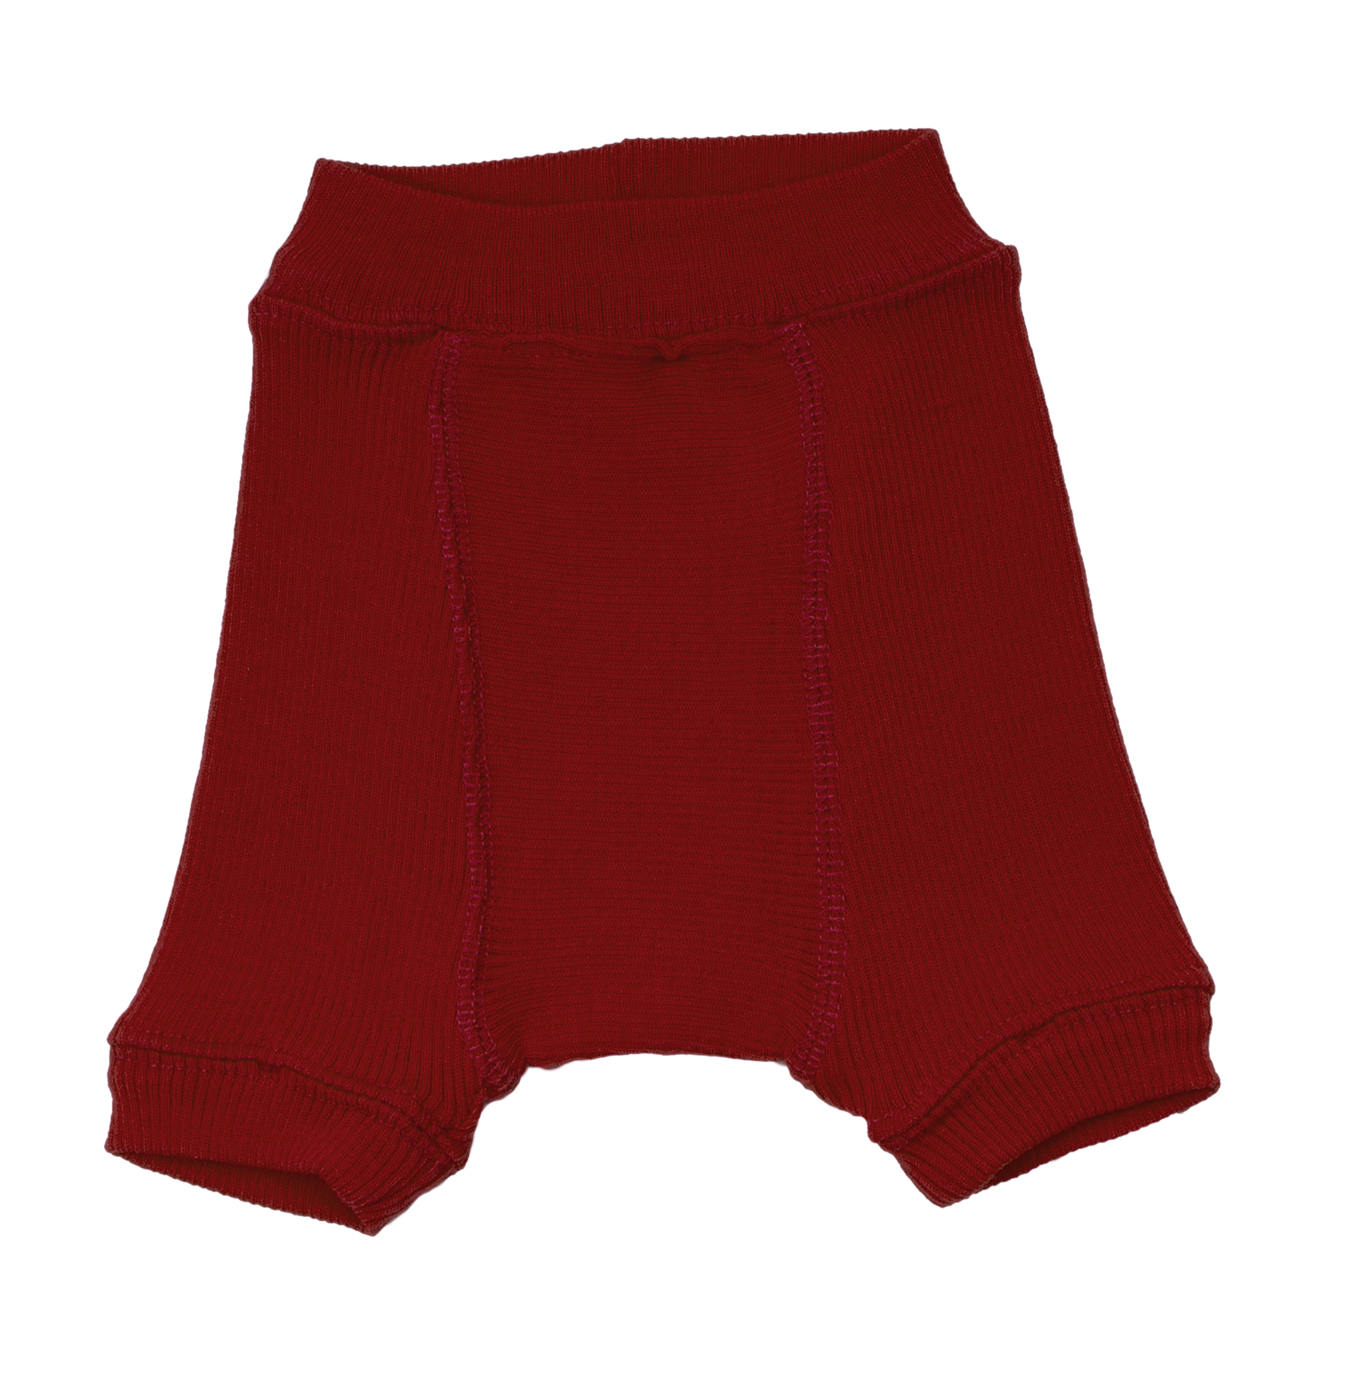 Shorties Manymonths Adventurer Plus (1-4 anos)